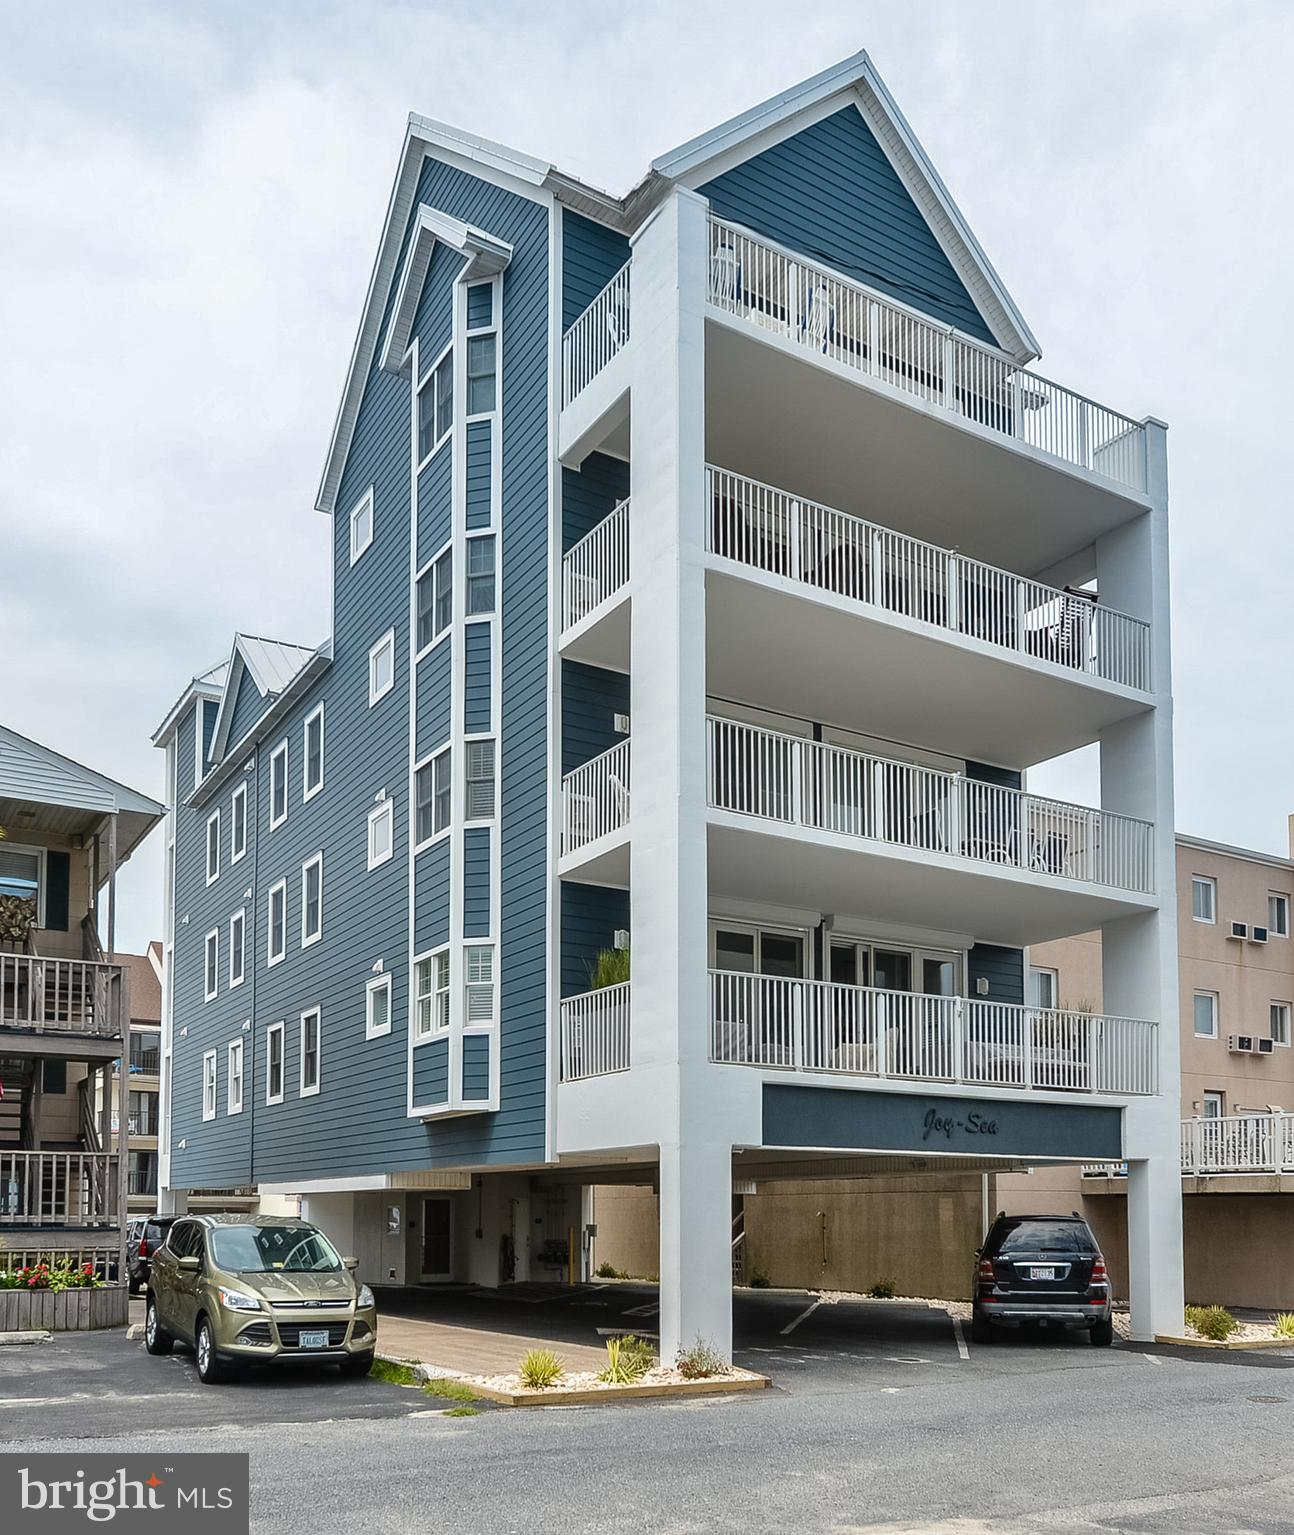 Incomparable North Ocean City condo in an intimate 3 unit building, ONLY 1 residence per floor!This